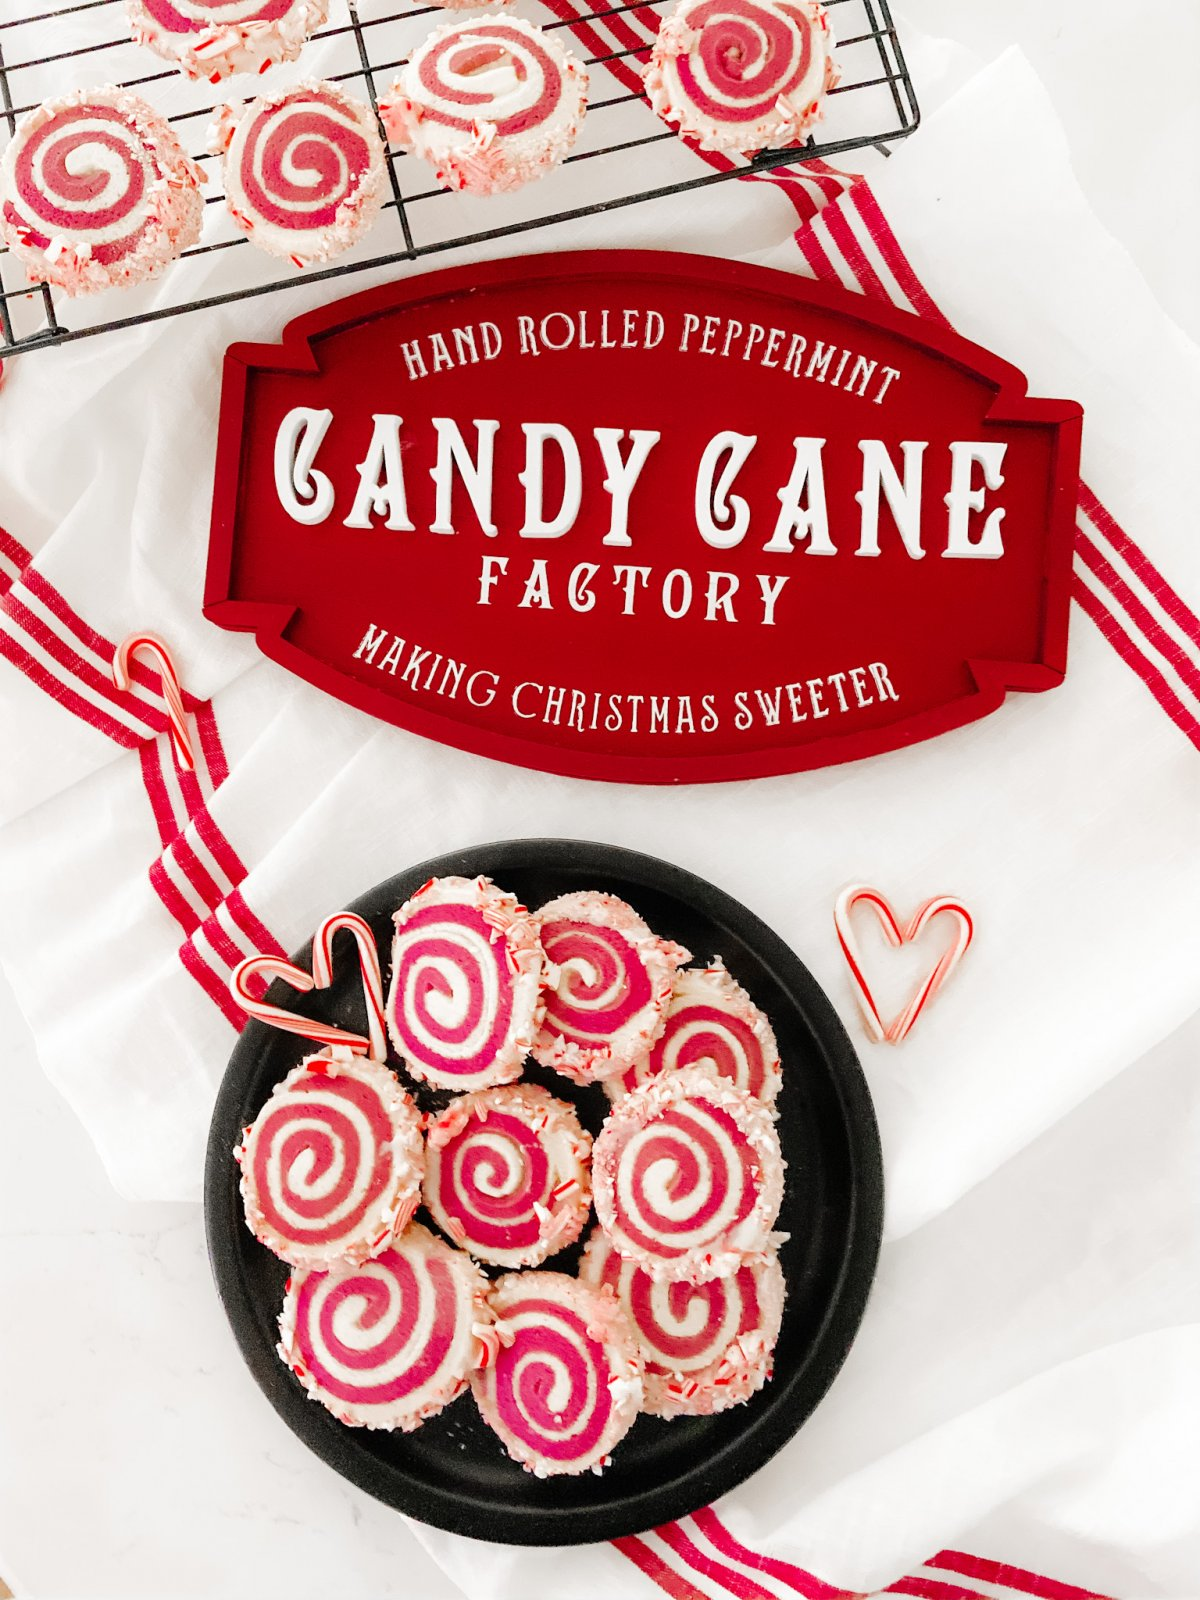 Candy Cane Frosted Swirl Cookies. Take the classic candy cane cookie and give it a modern update by rolling it, frosting it and rolling it in crushed candy canes!